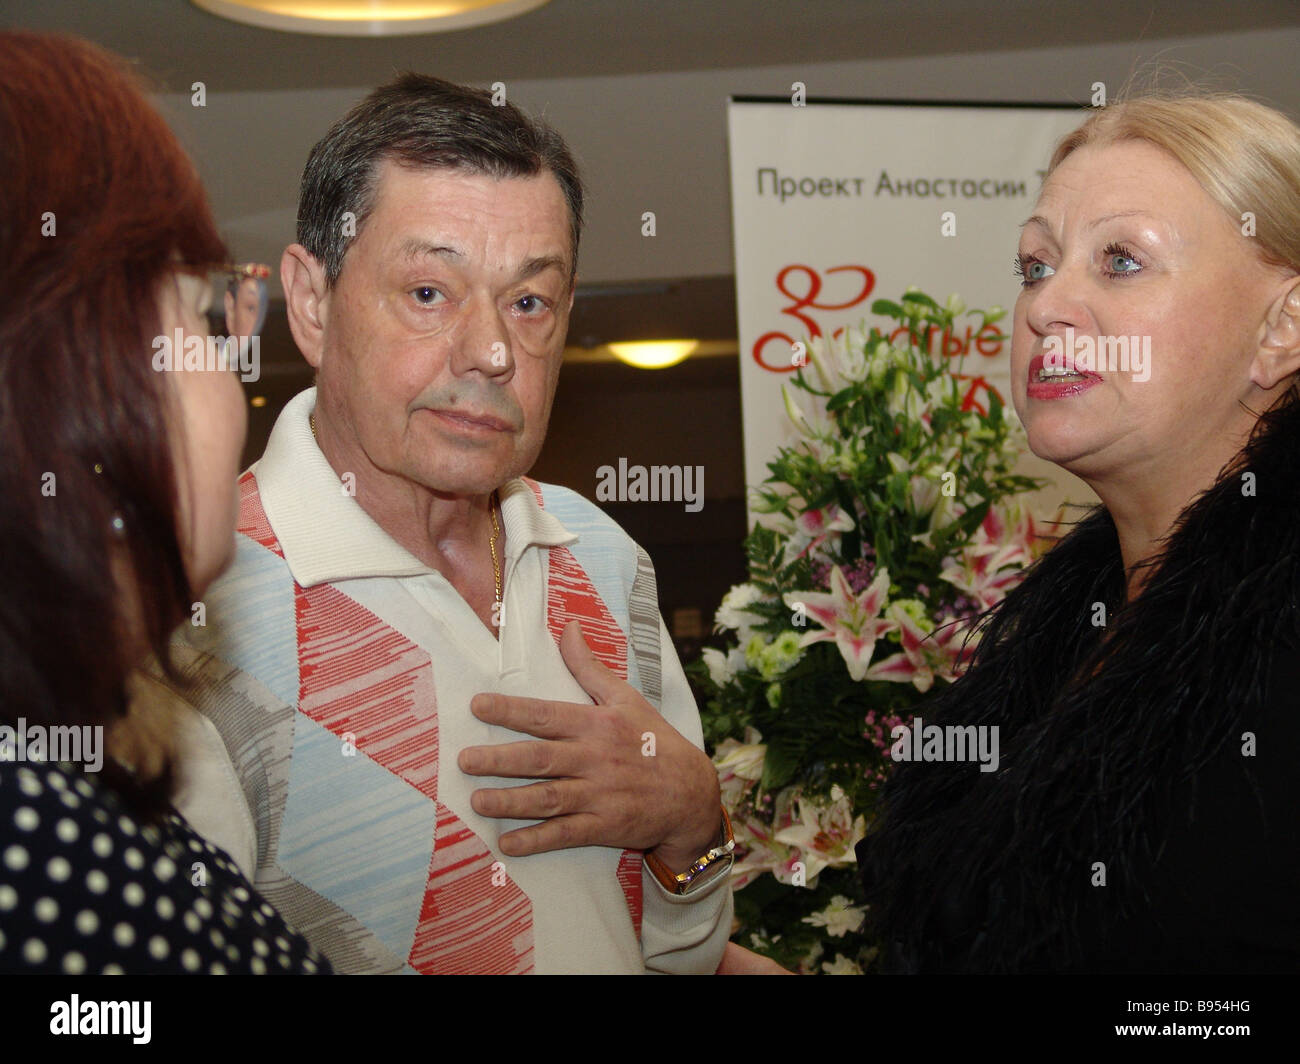 A 72-year-old Karachentsov was diagnosed with cancer